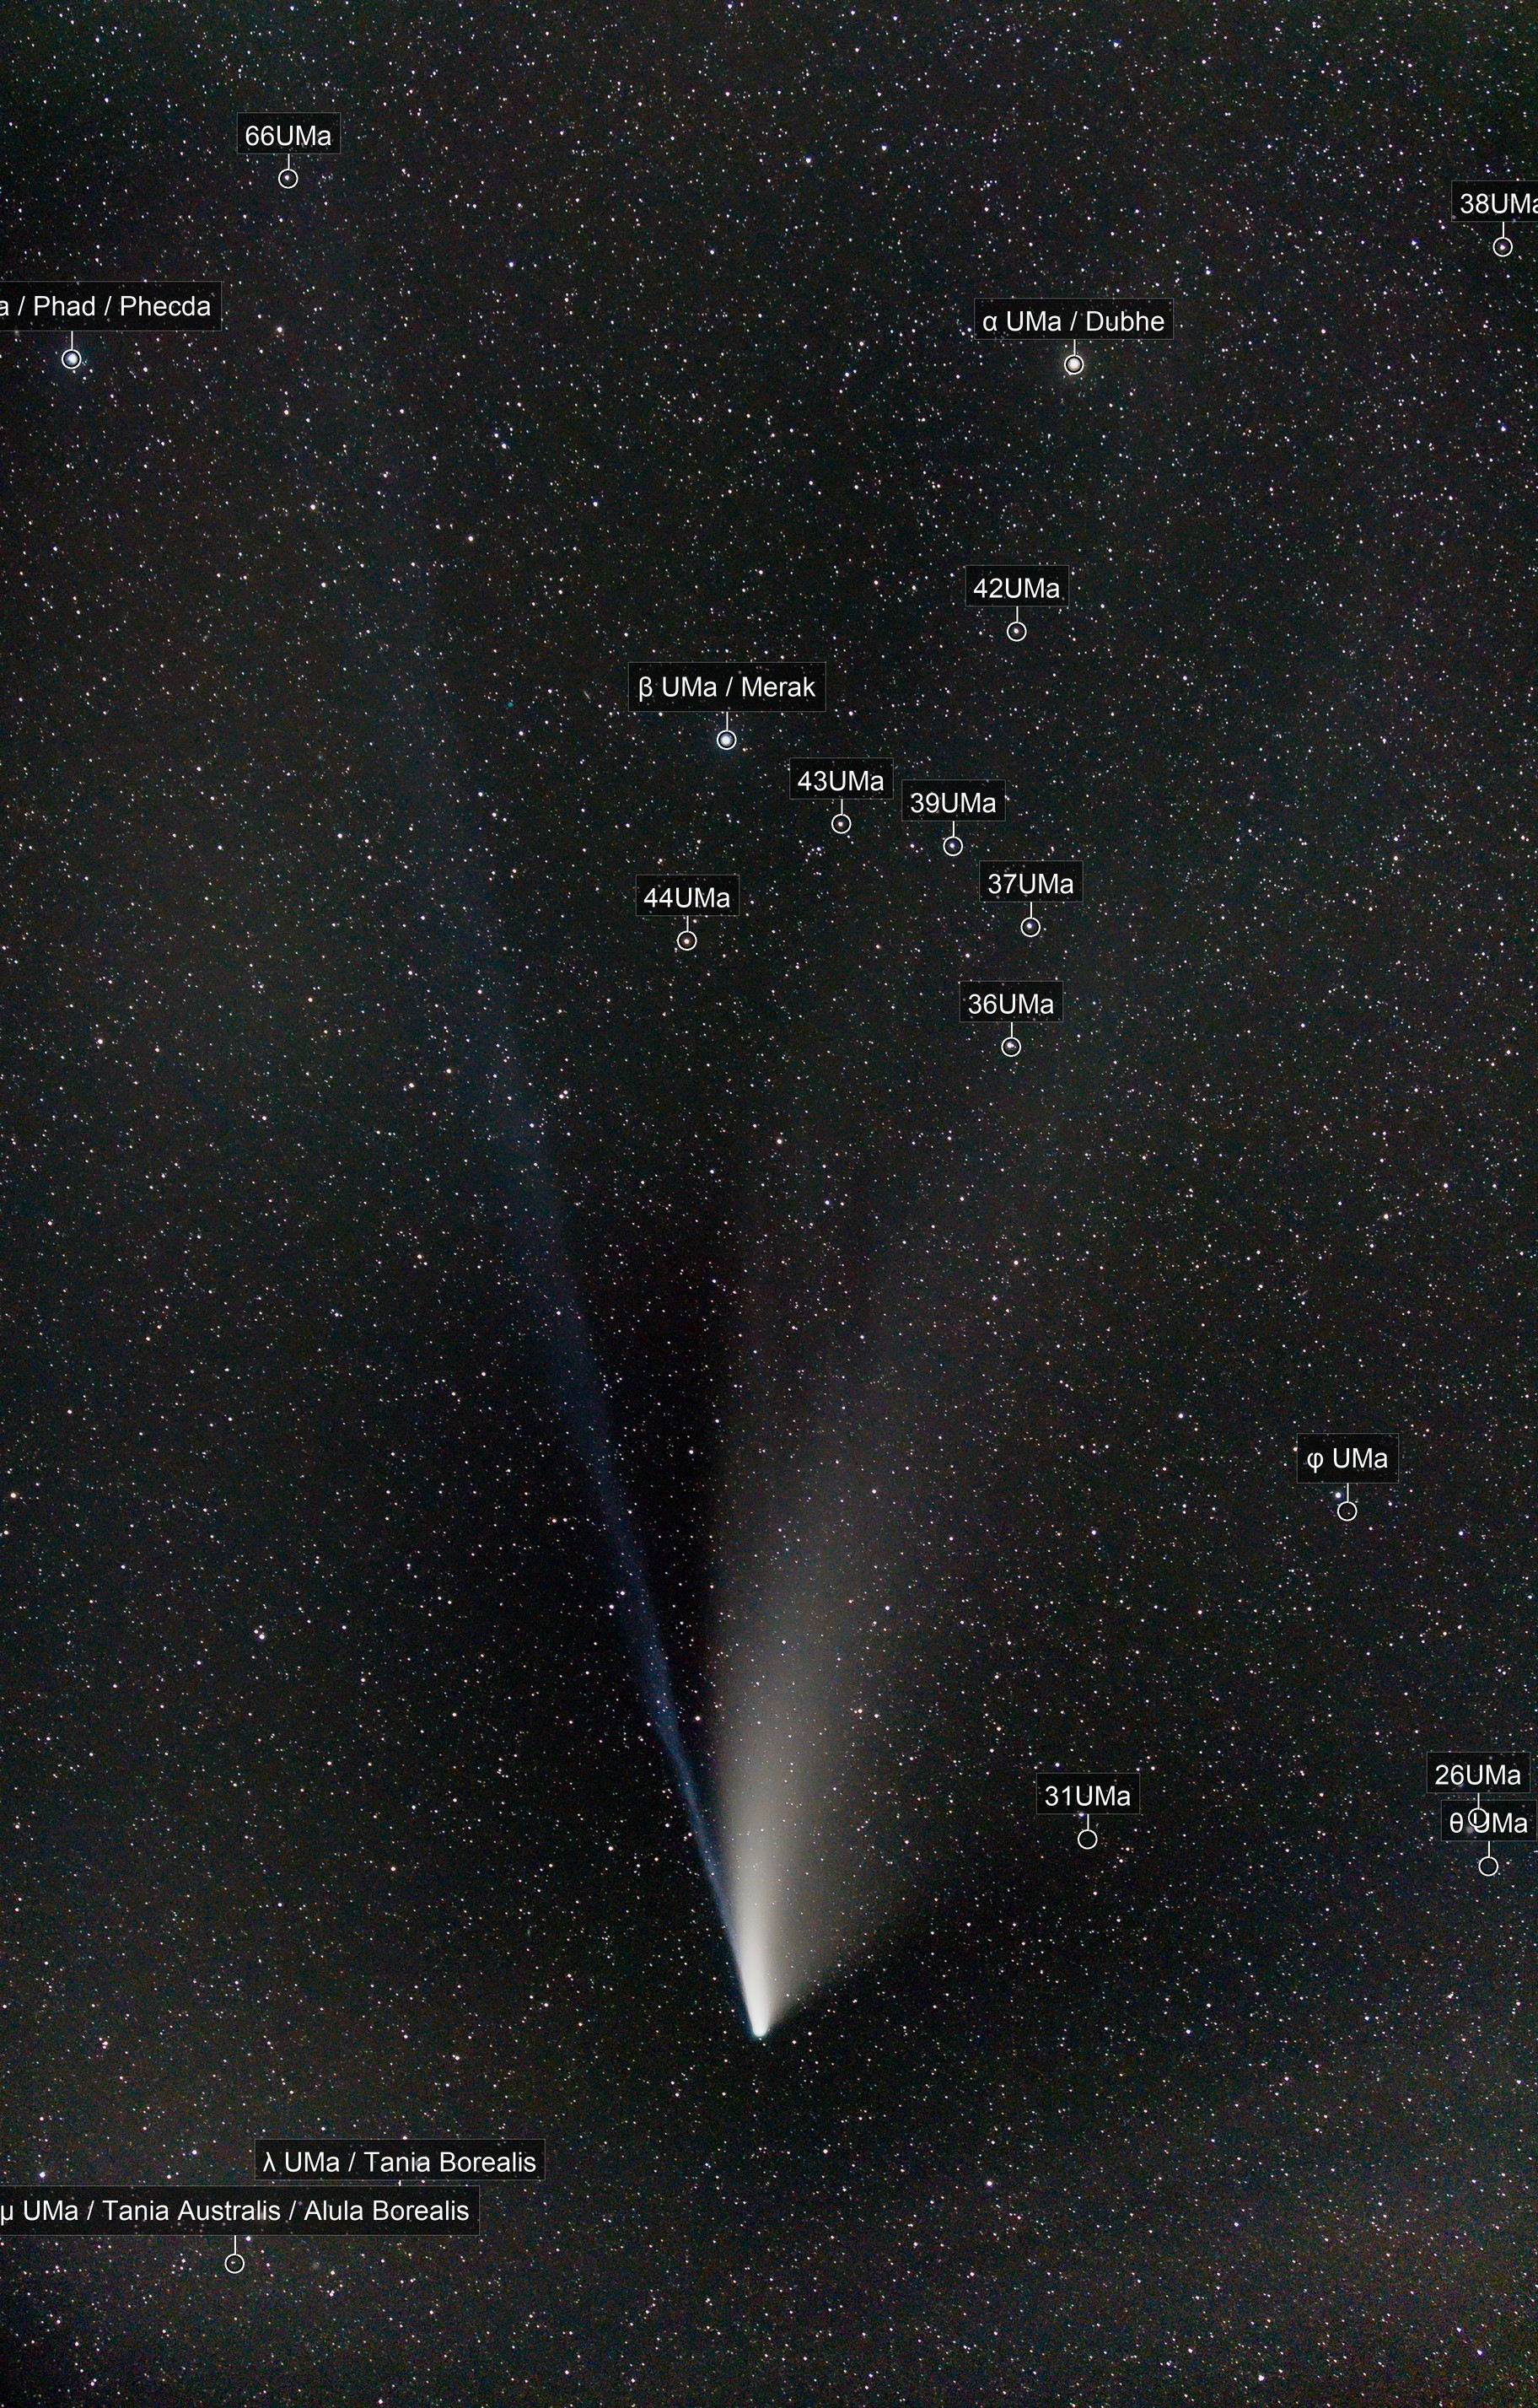 C/2020 F3 (NEOWISE)